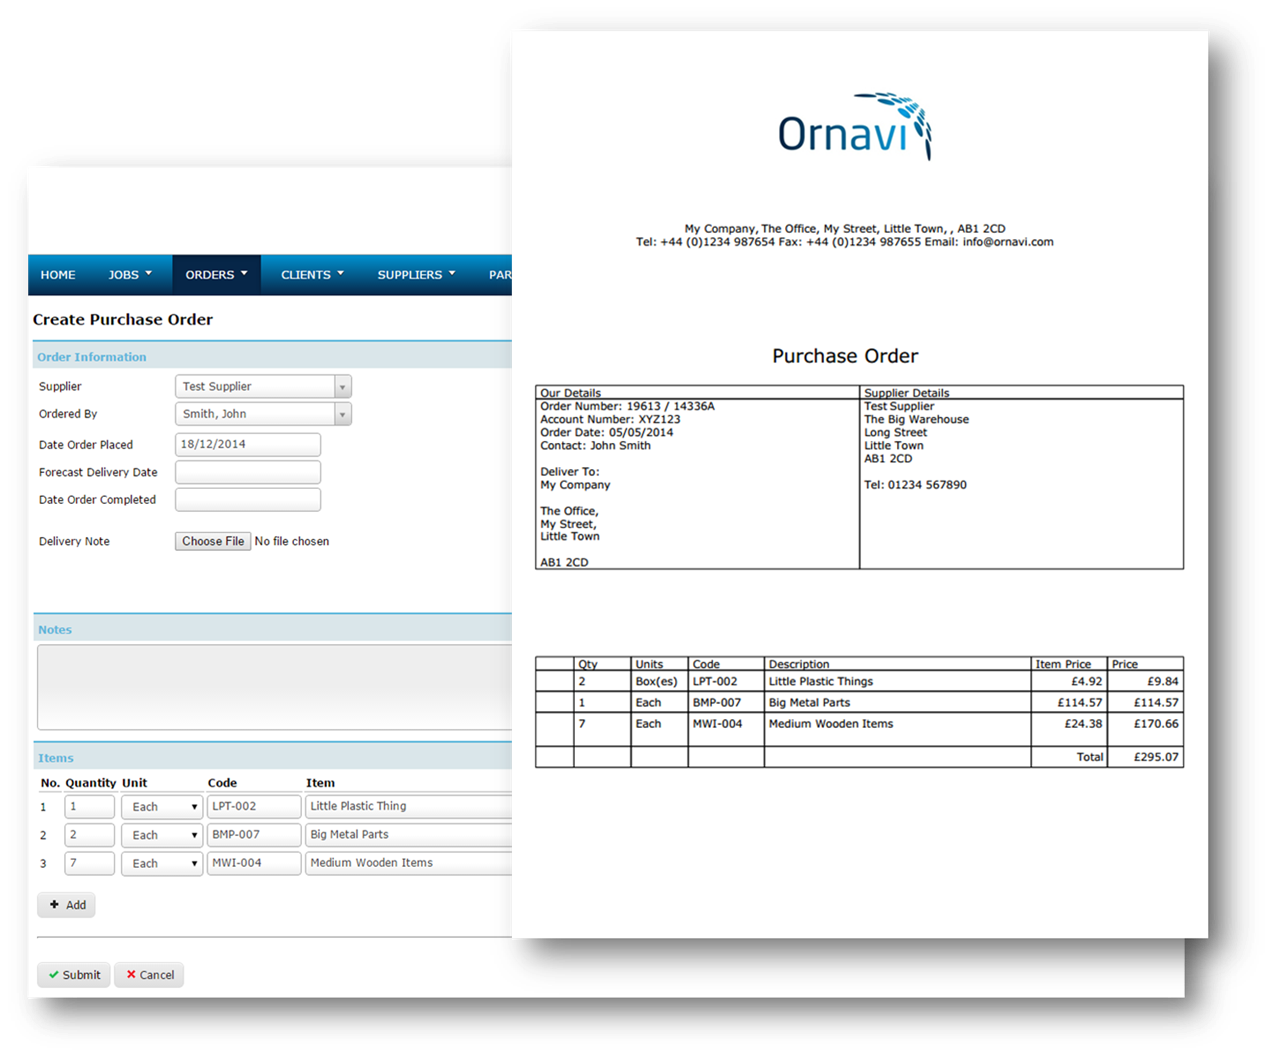 Ornavi Screenshot - Create a Purchase Order and Final PDF